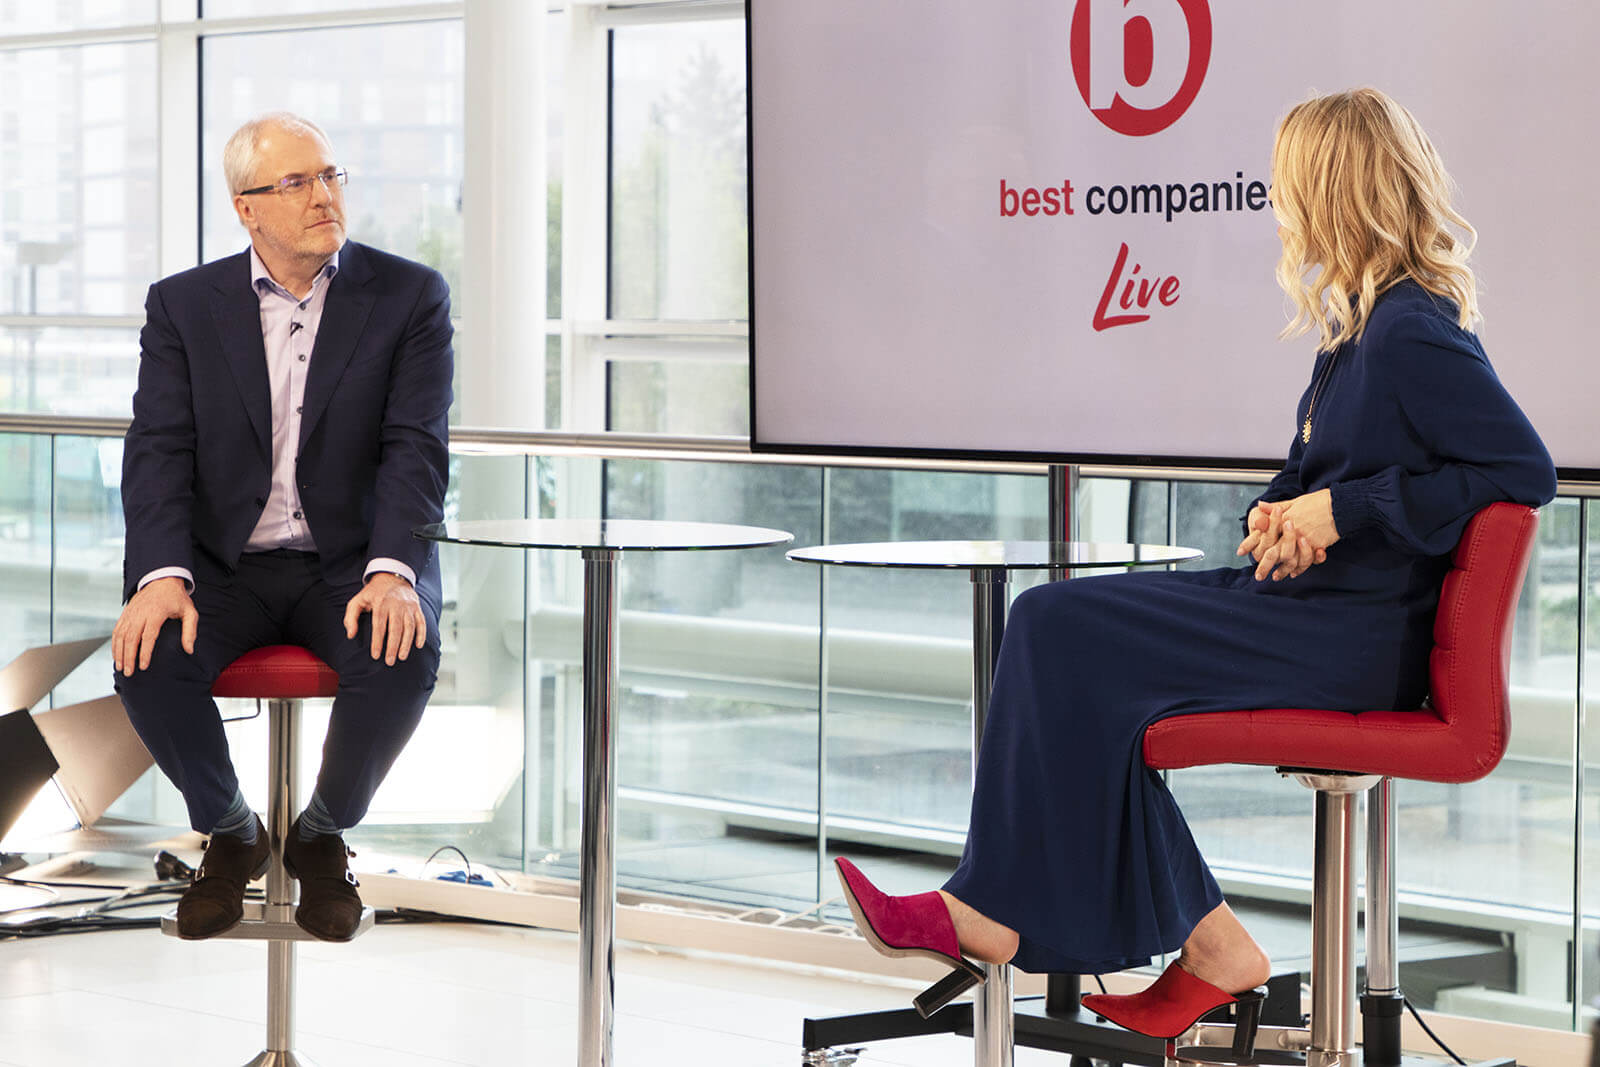 Best Companies CEO Jonathan Austin with presenter and actress Jemma Bolt on the set of Best Companies Live